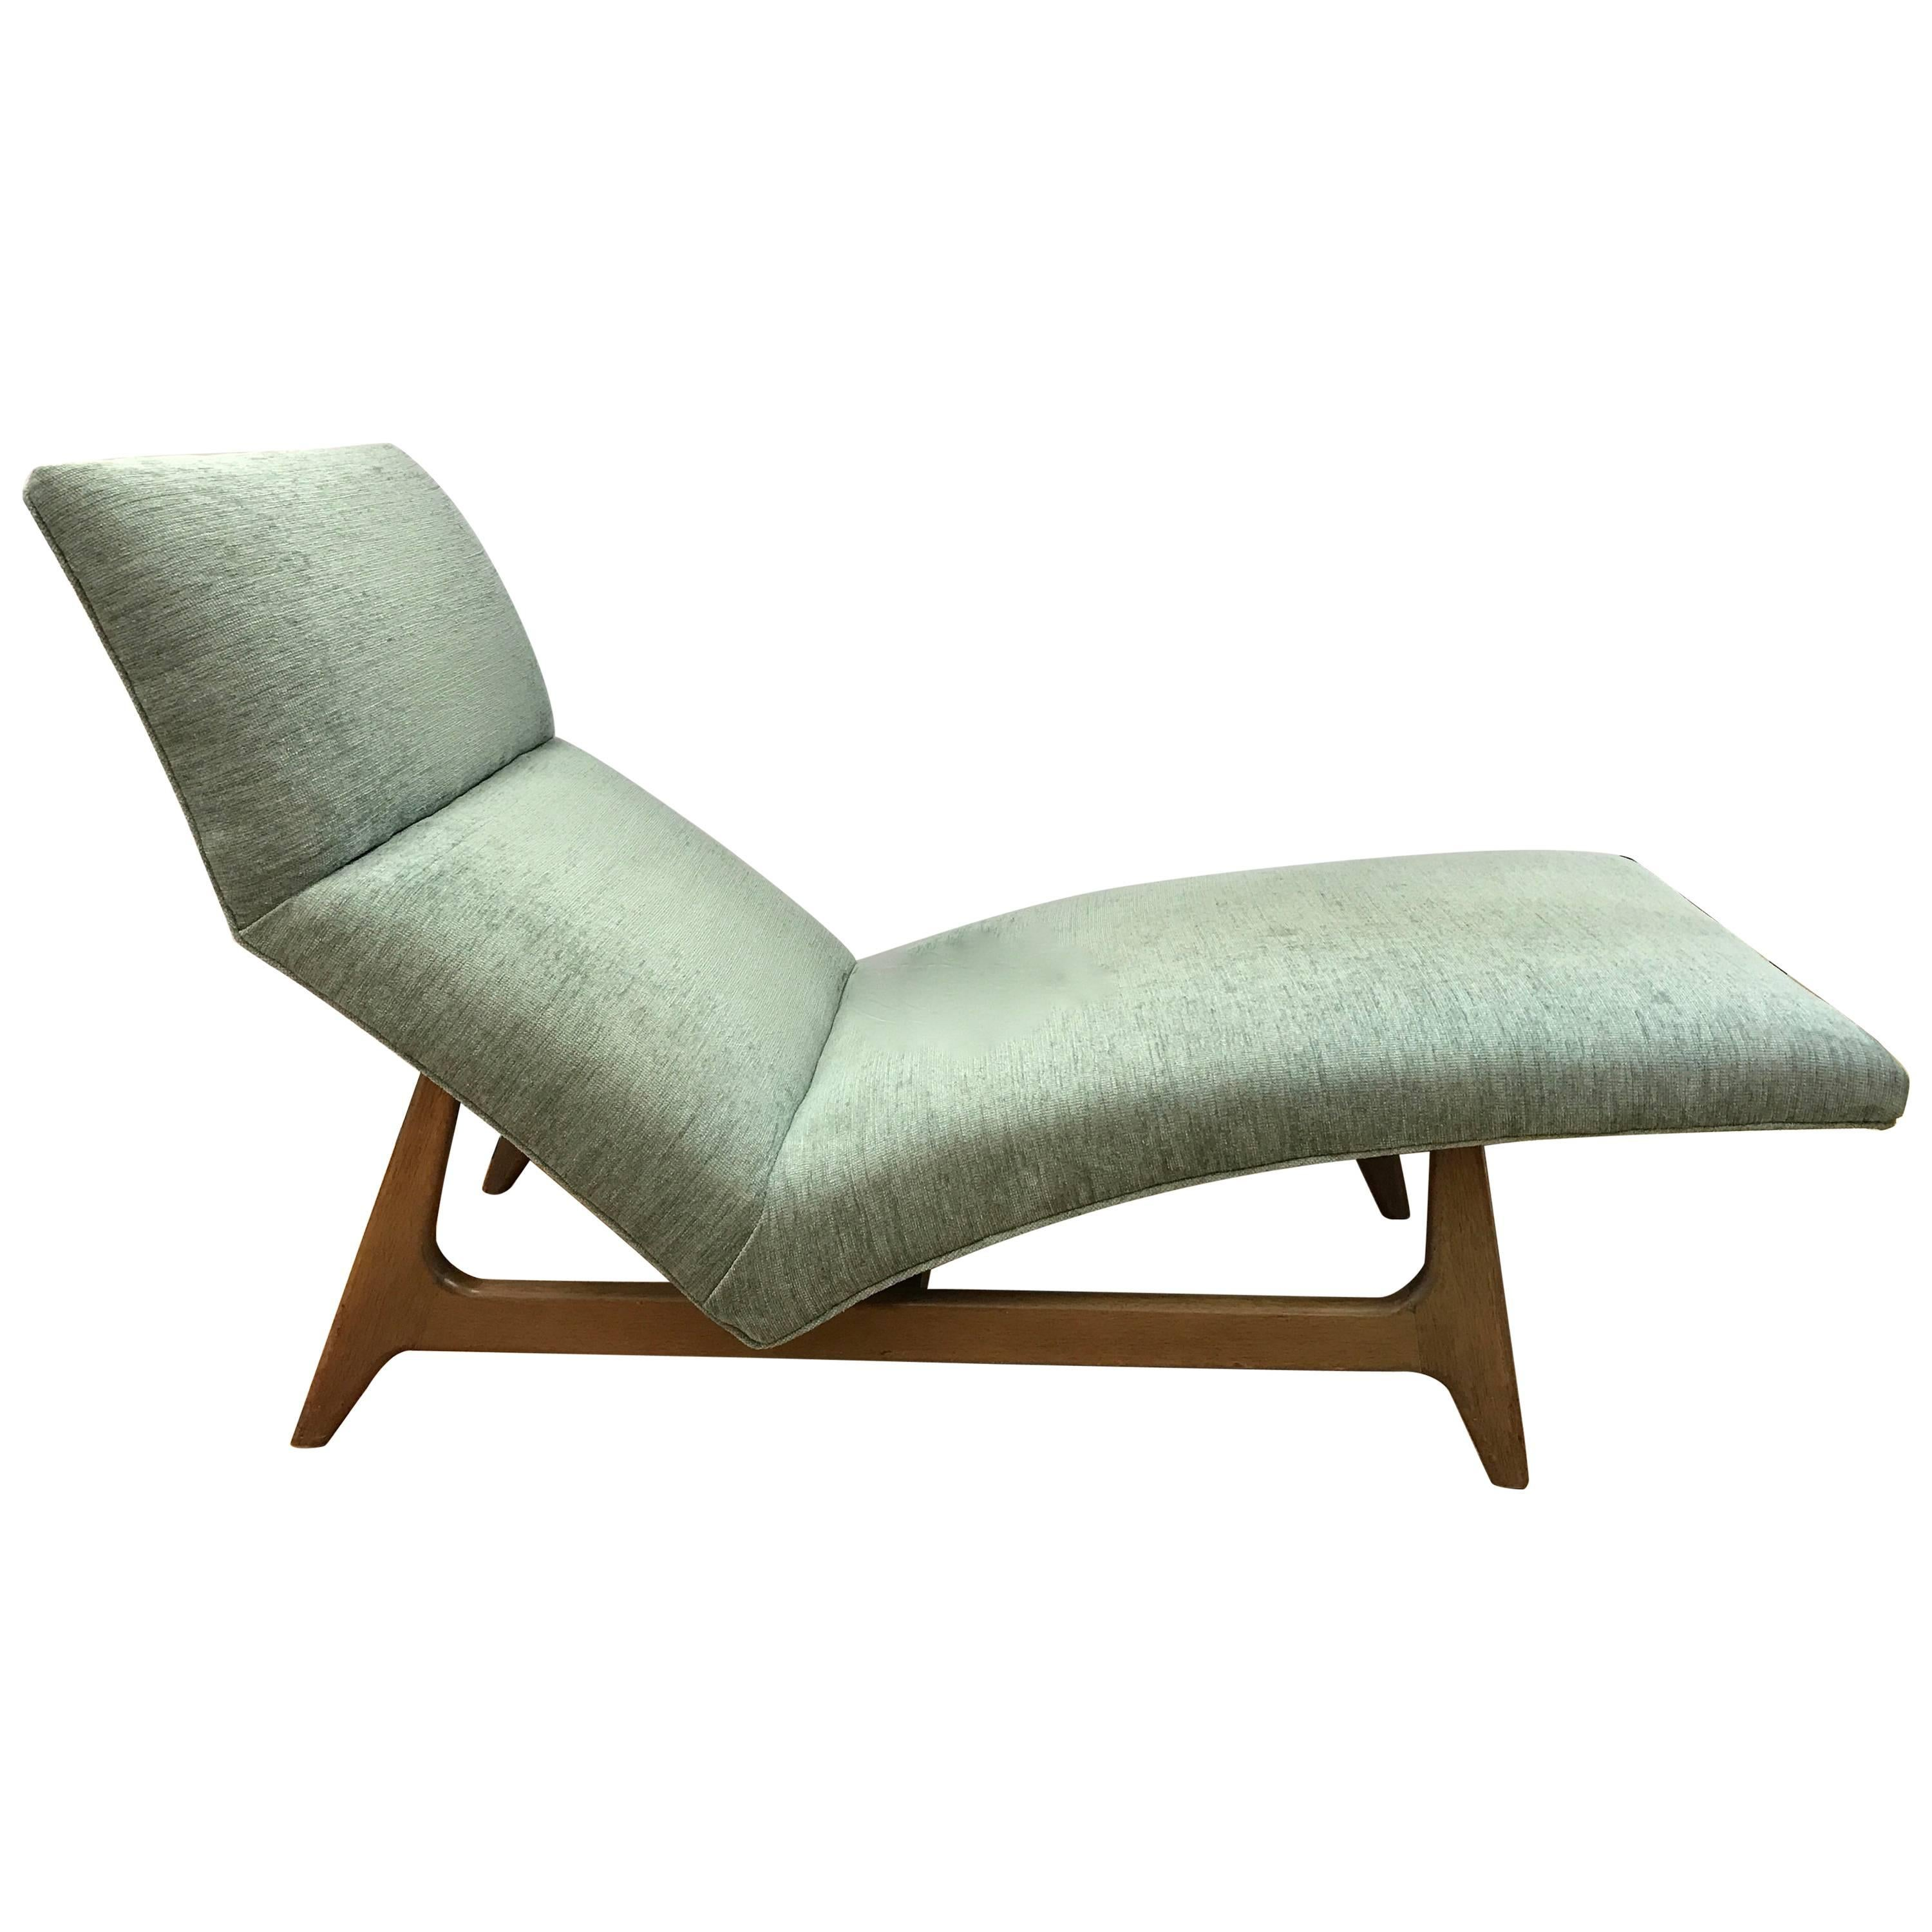 Superb Midcentury Curved Chaise Lounge Chair Attributed To Adrian Pearsall For Sale Good Looking